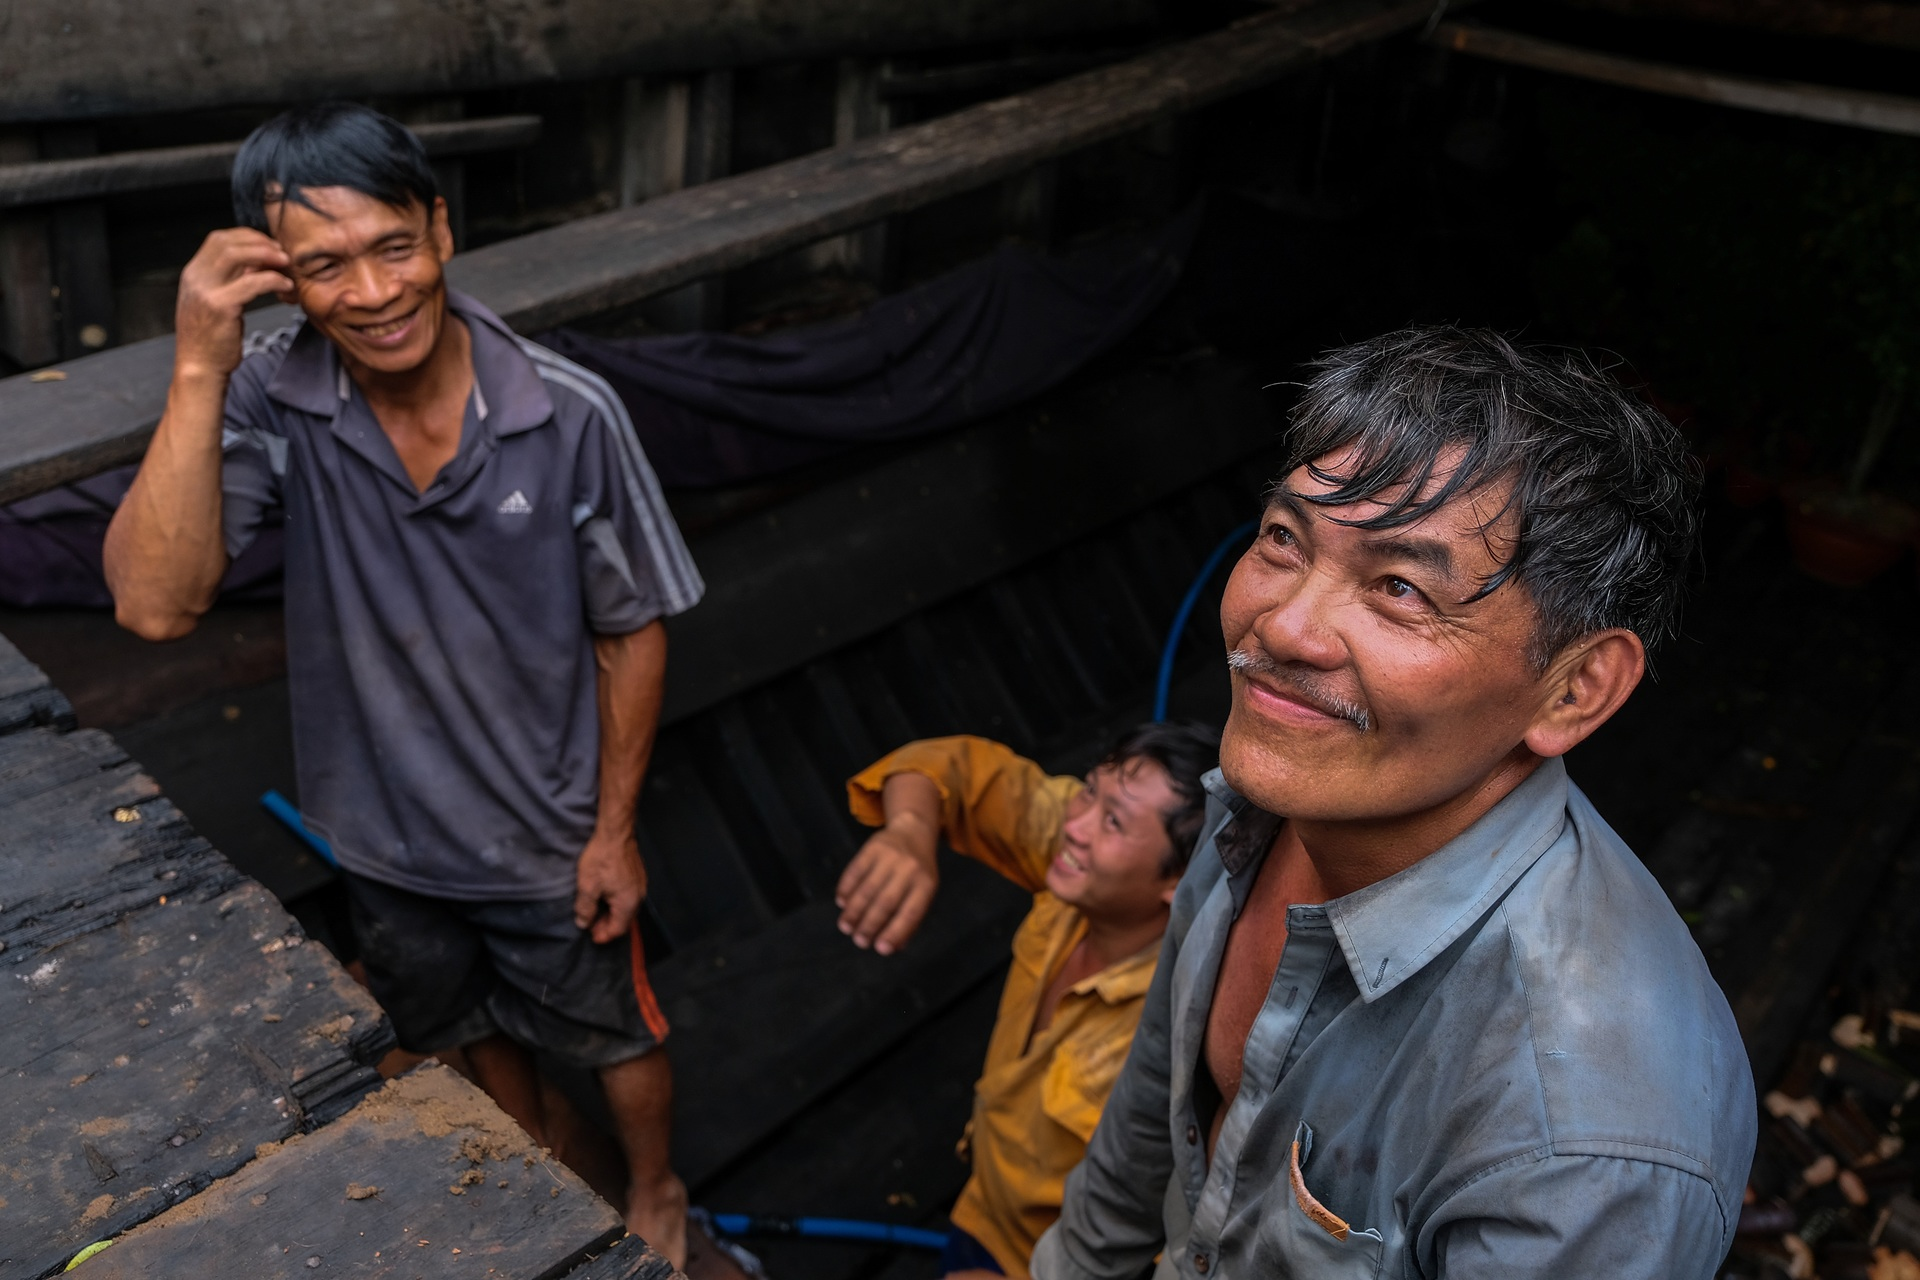 Mekong Delta boat sets sail with lucky trees for Tet - VnExpress